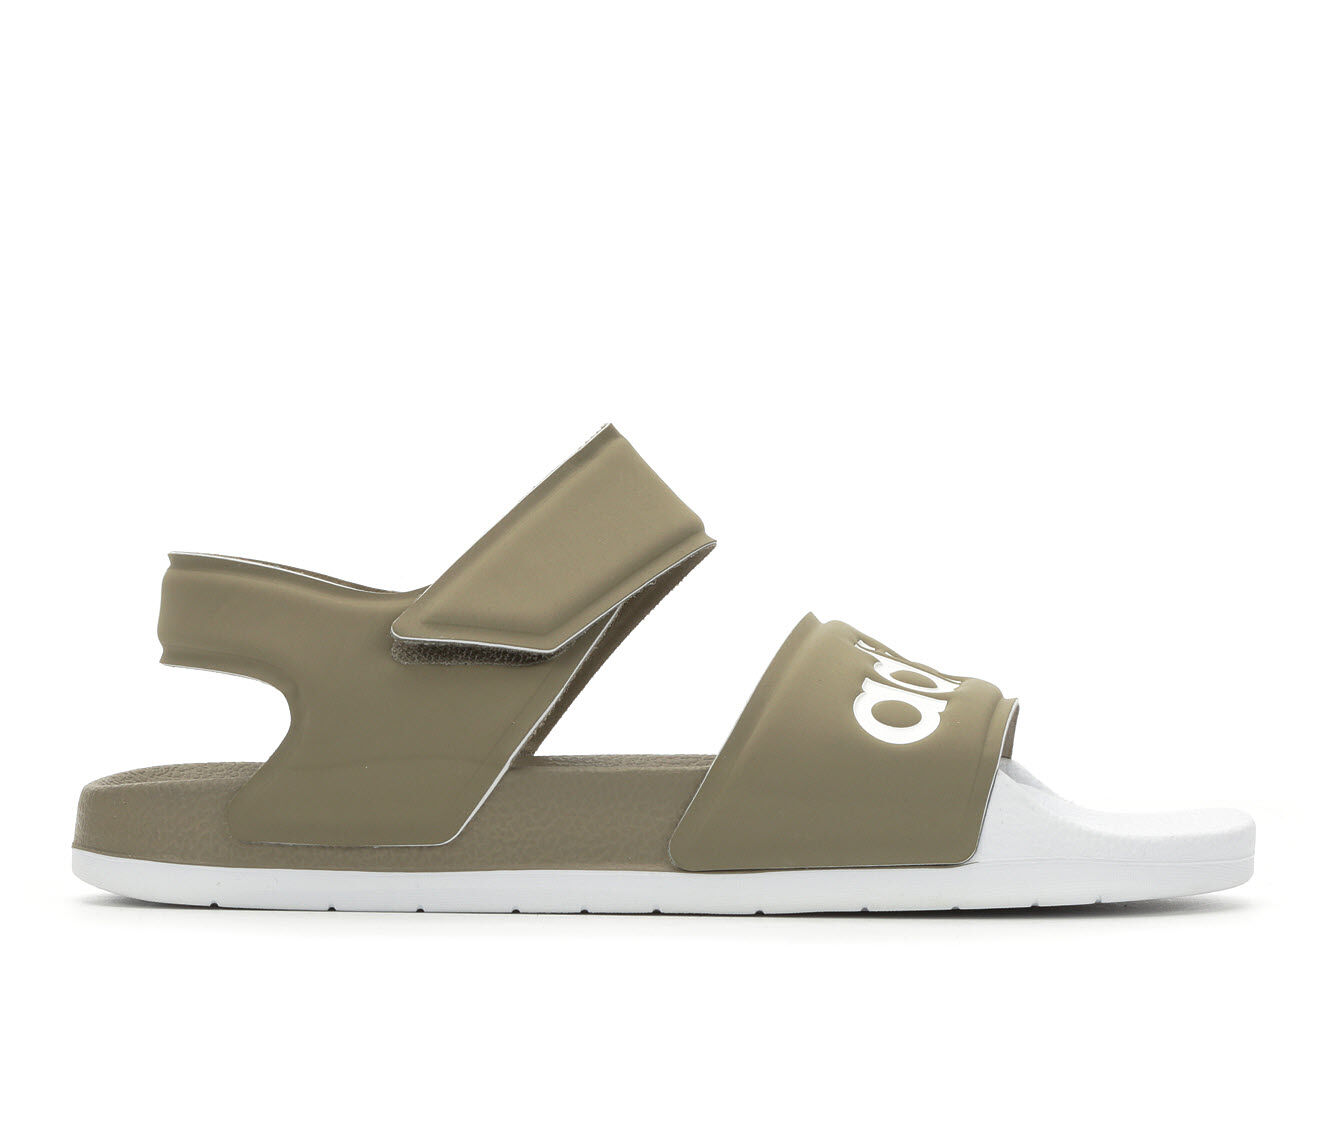 Women's Adidas Adilette Sport Sandals Trace Cargo/Wh